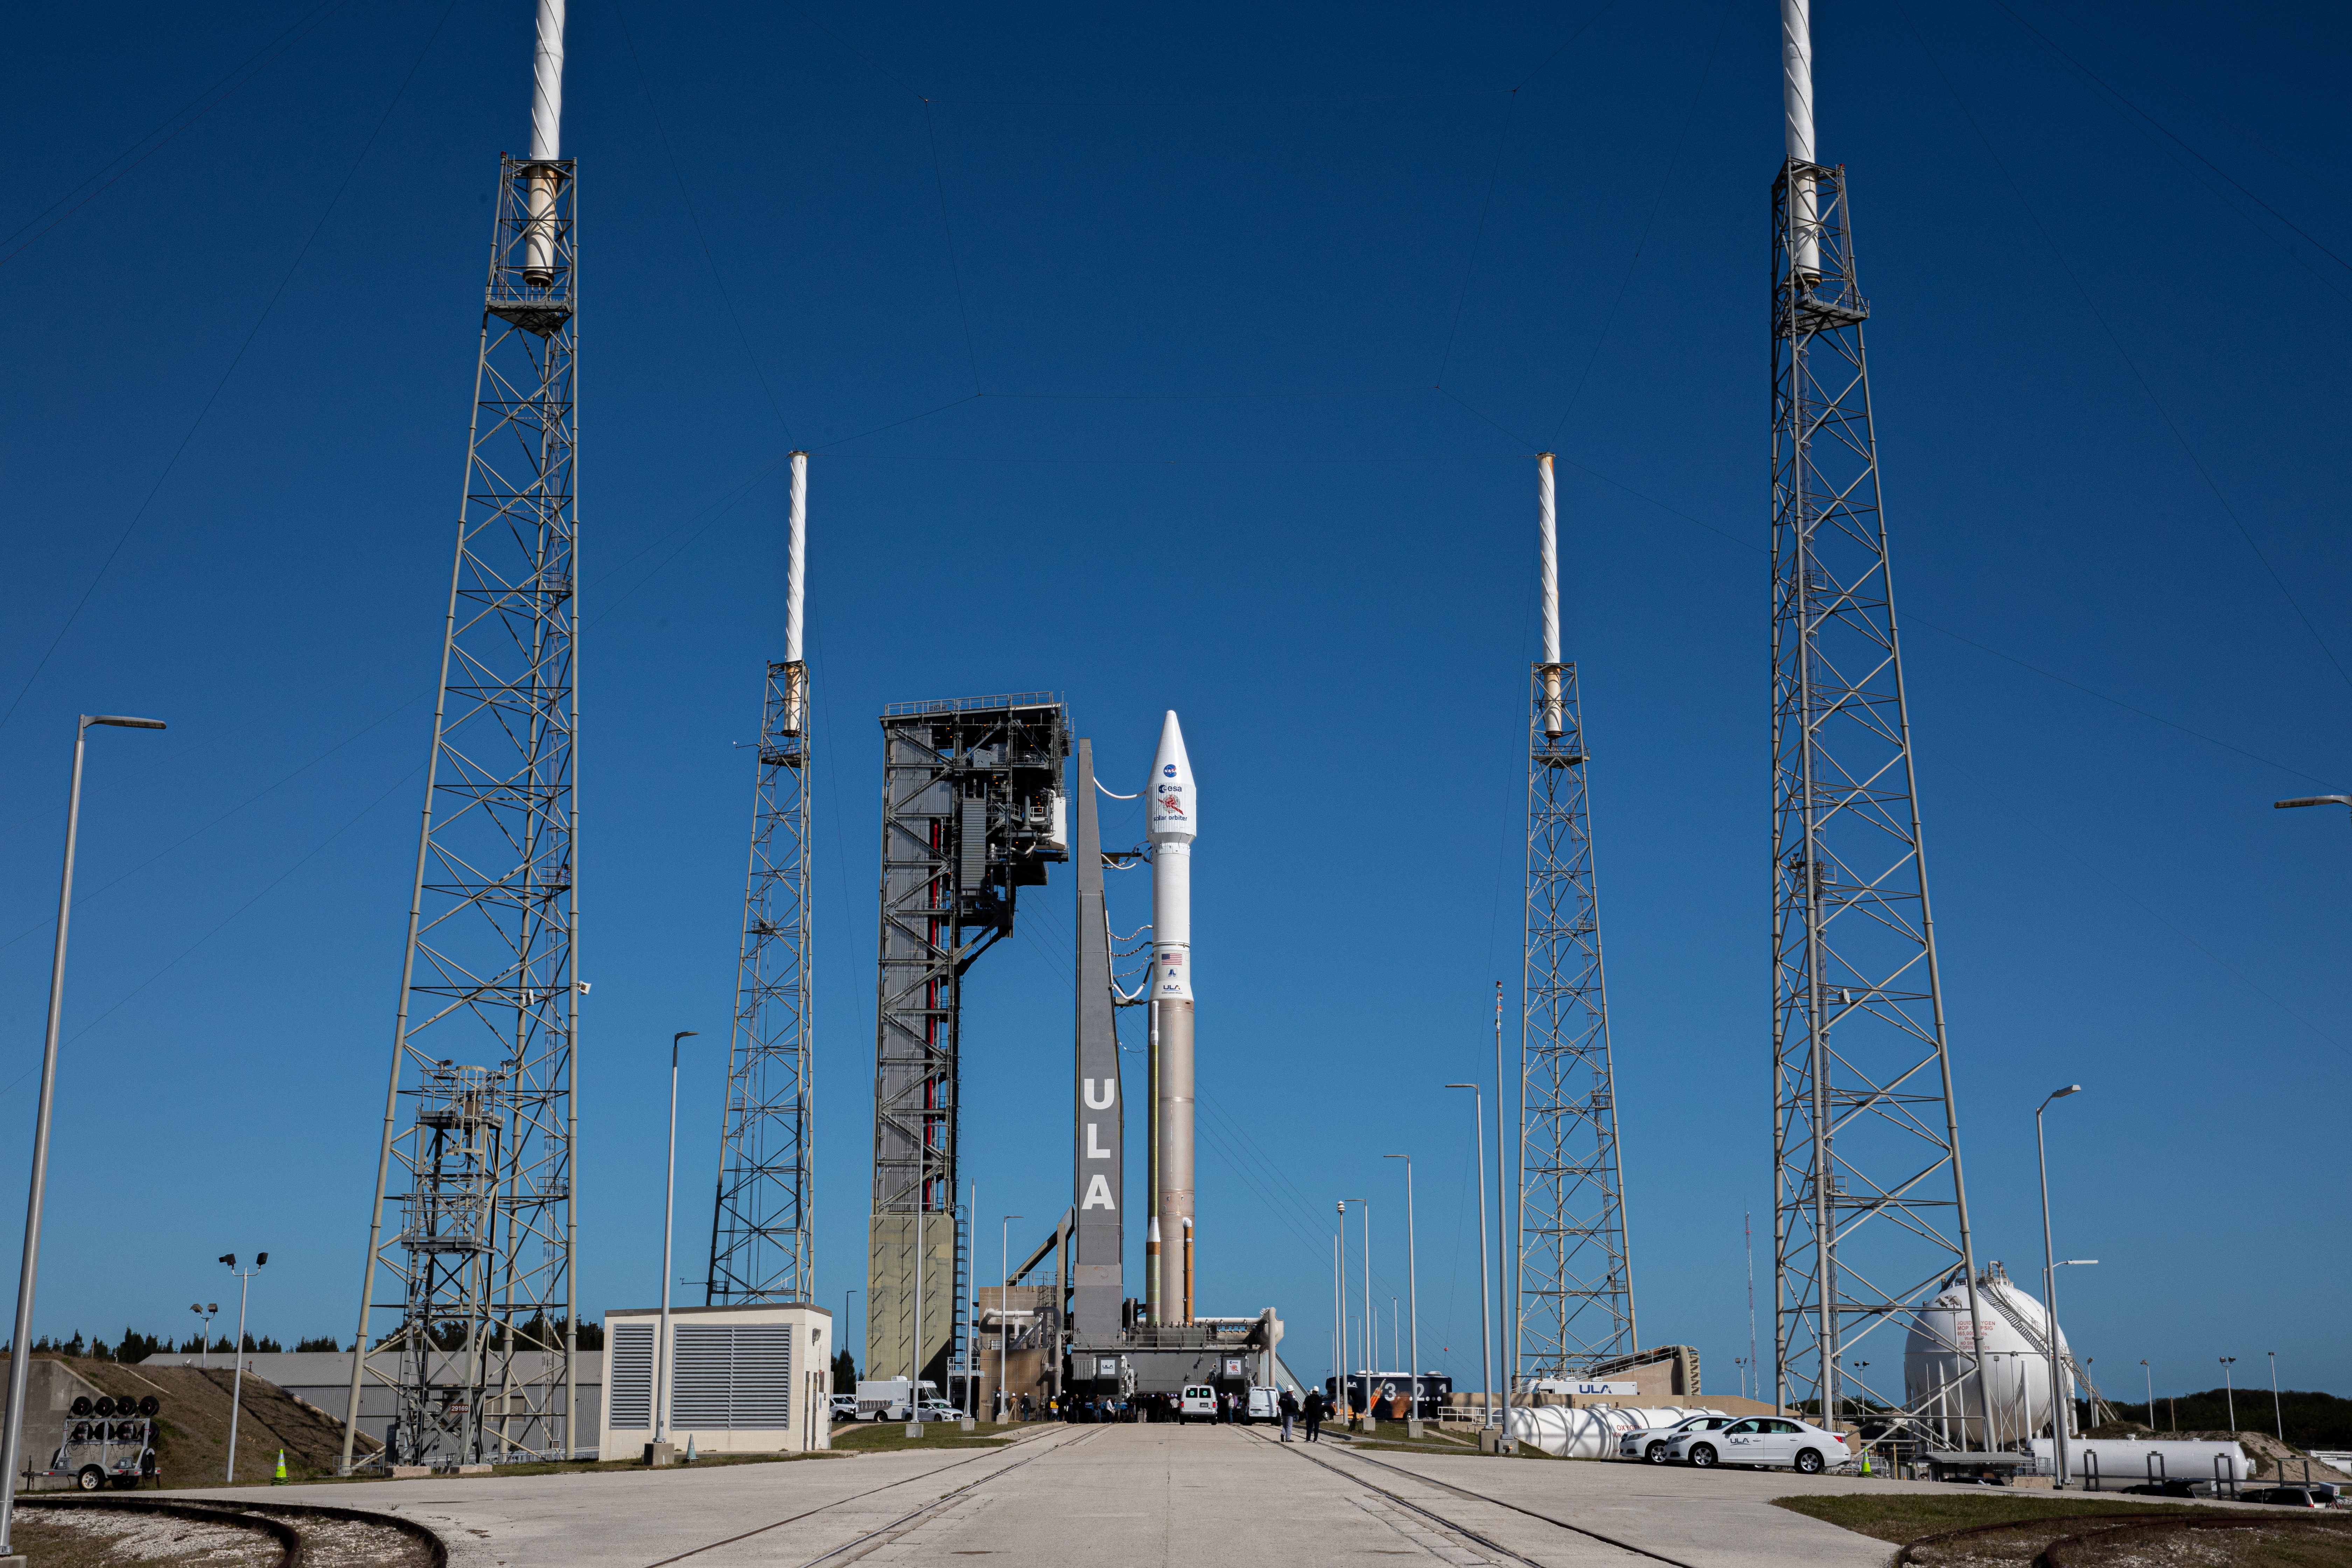 The United Launch Alliance Atlas V rocket with the Solar Orbiter spacecraft arrives at the launch pad at Space Launch Complex 41 on Cape Canaveral Air Force Station in Florida on Feb. 8, 2020.